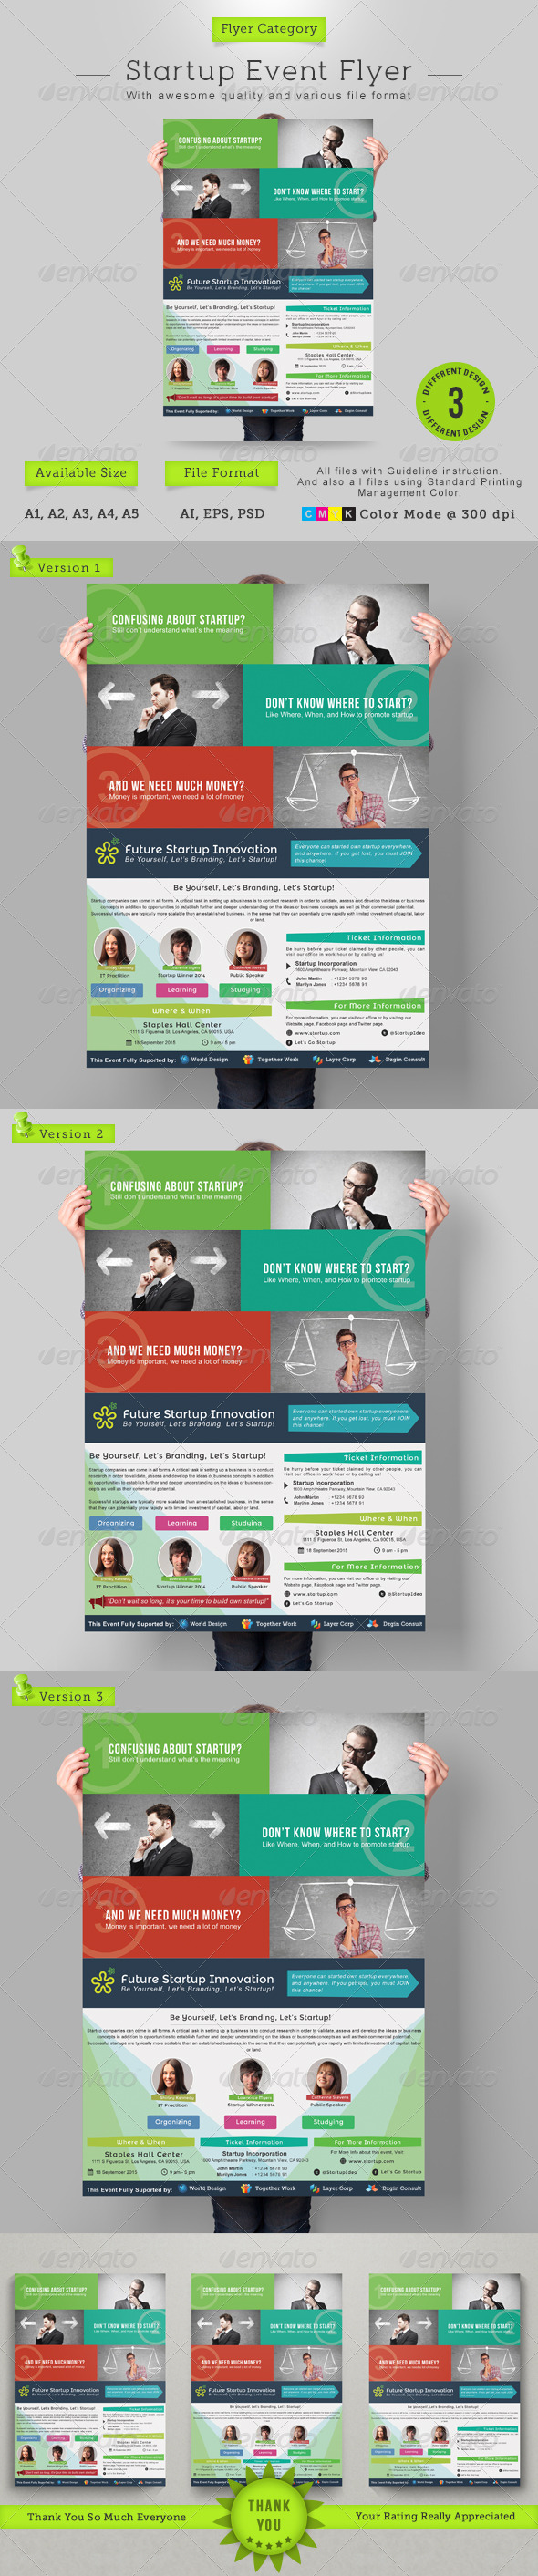 GraphicRiver Startup Event Flyer 6887607